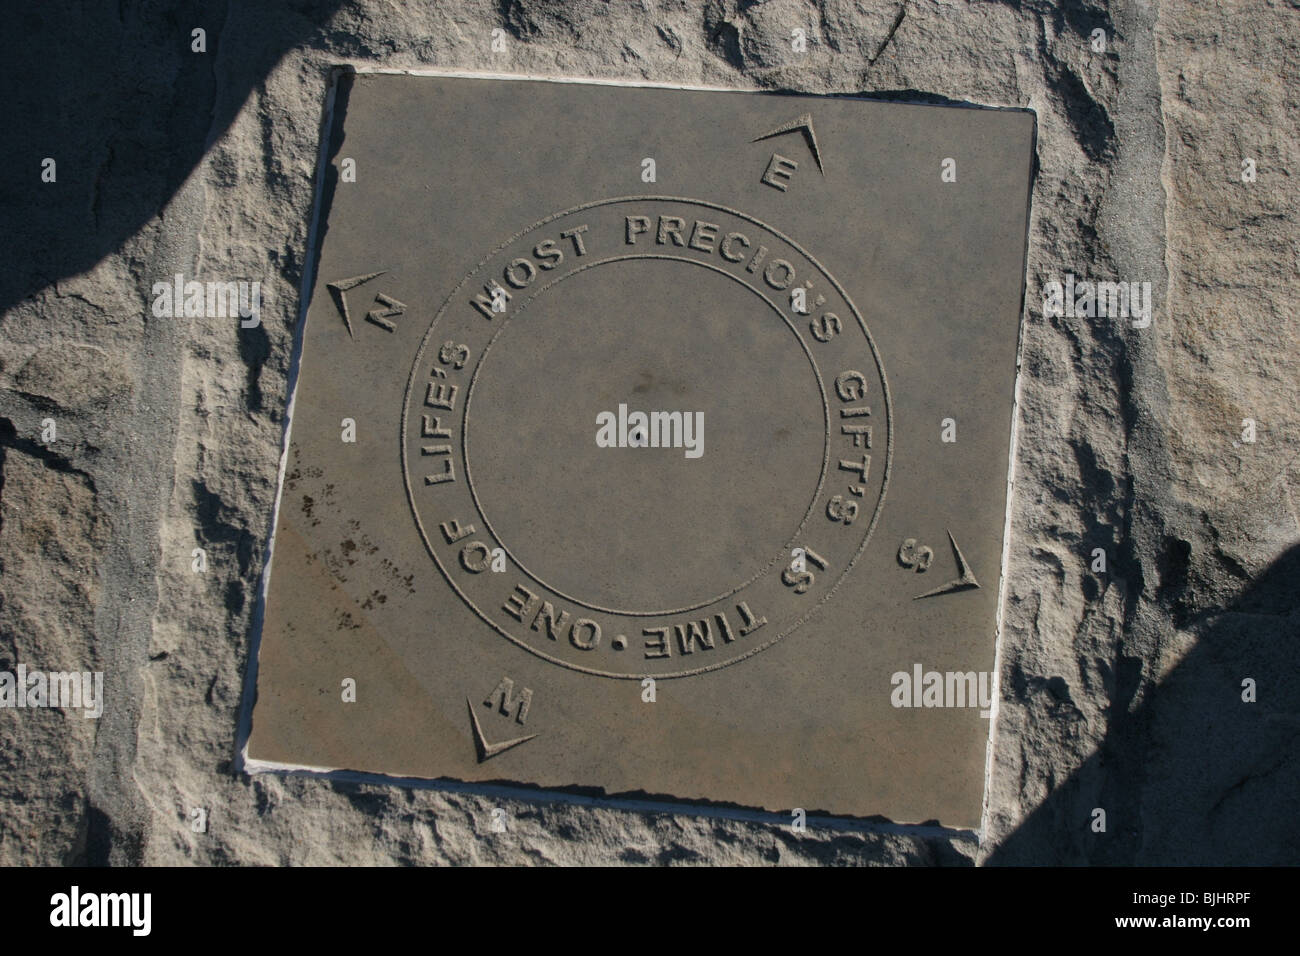 Compass points plaque inscribed 'One of Life's Most Precious Gifts is Time' - Stock Image